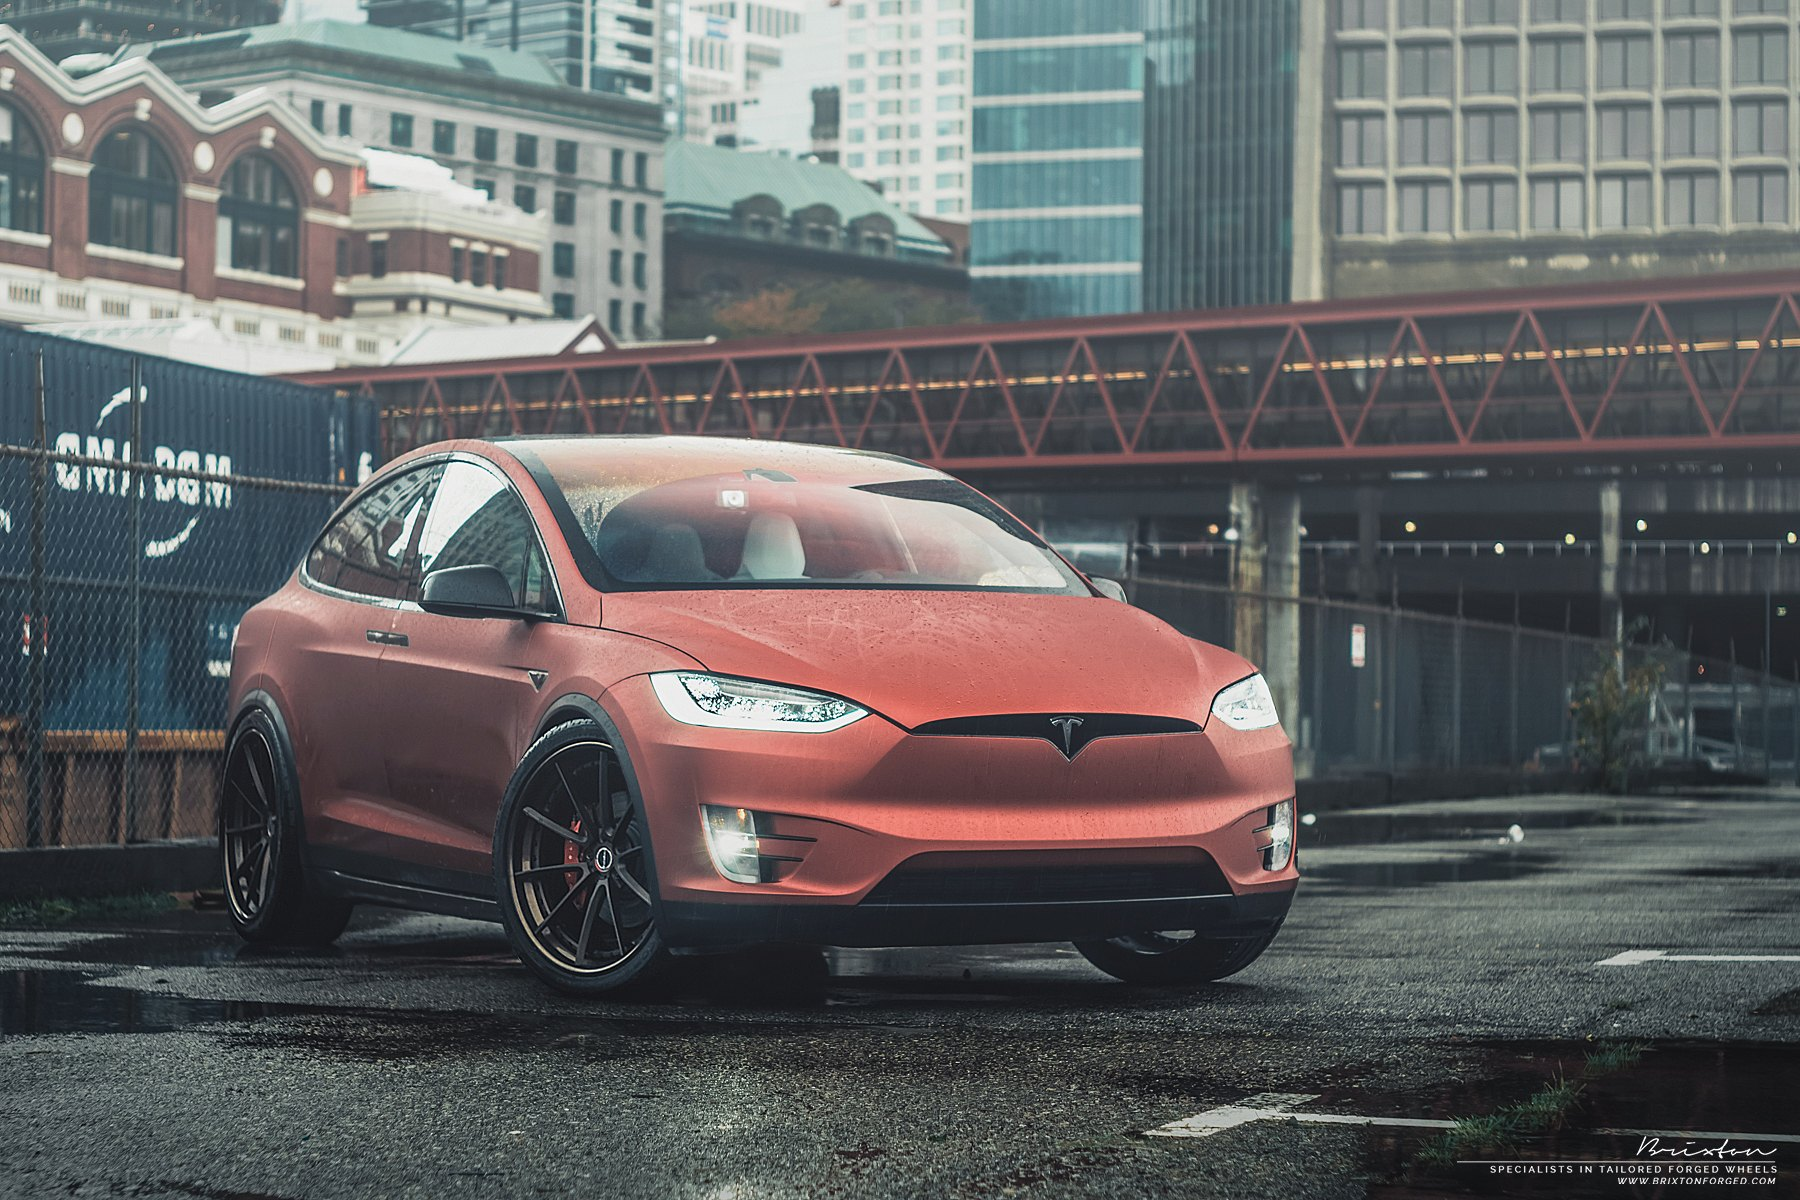 Revolutionary Appearance Of Red Tesla Model X Shod In